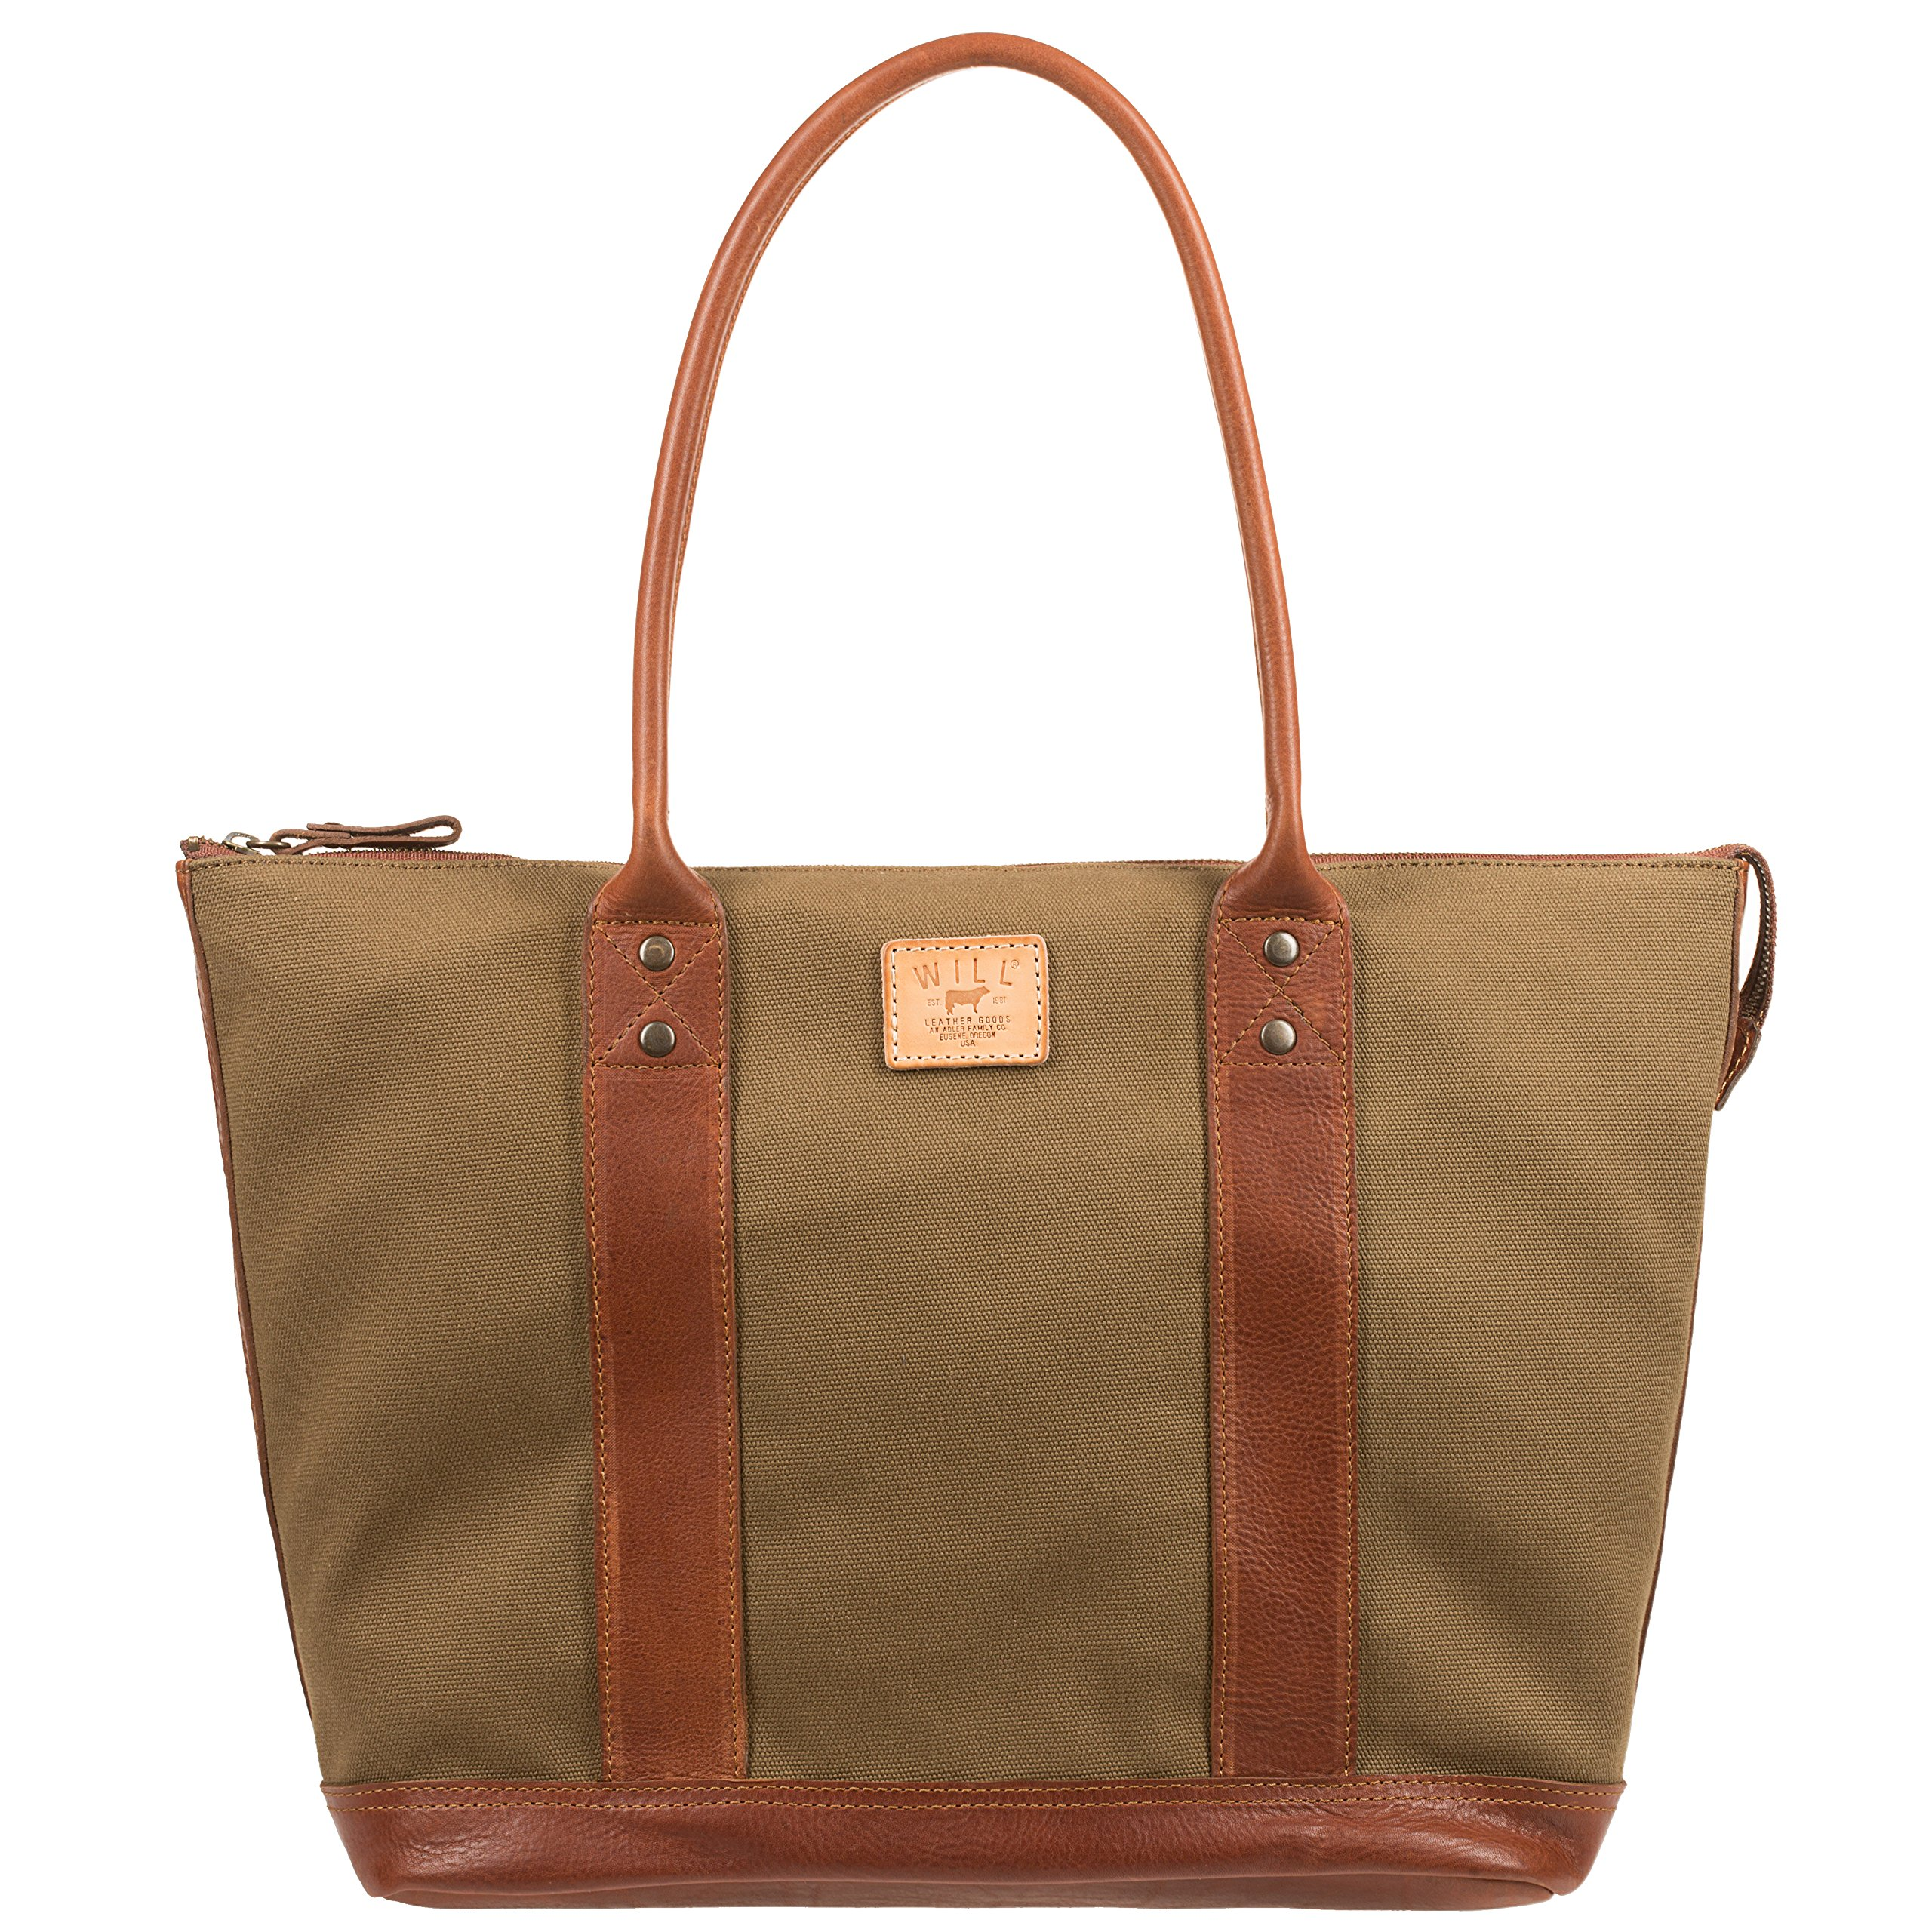 Will Leather Goods Women's Large Signature Canvas and Leather Getaway Tote, Tobacco & Saddle Brown